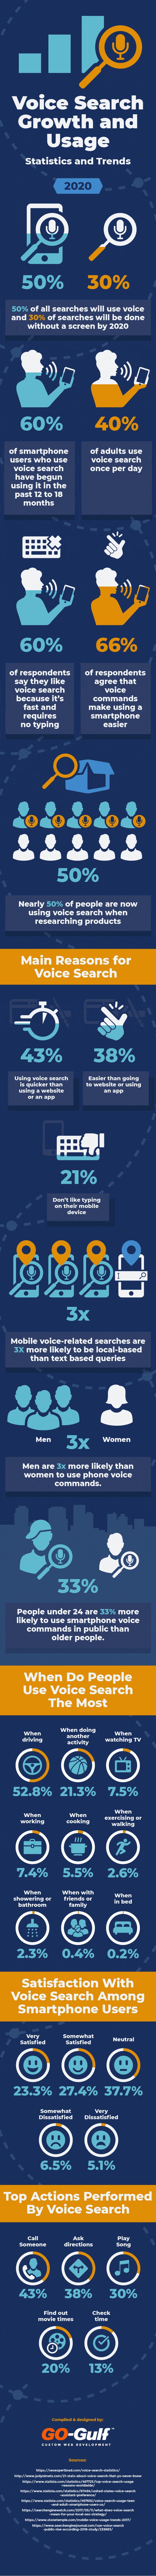 Voice Search Growth and Usage - Statistics and Trends - #infographic